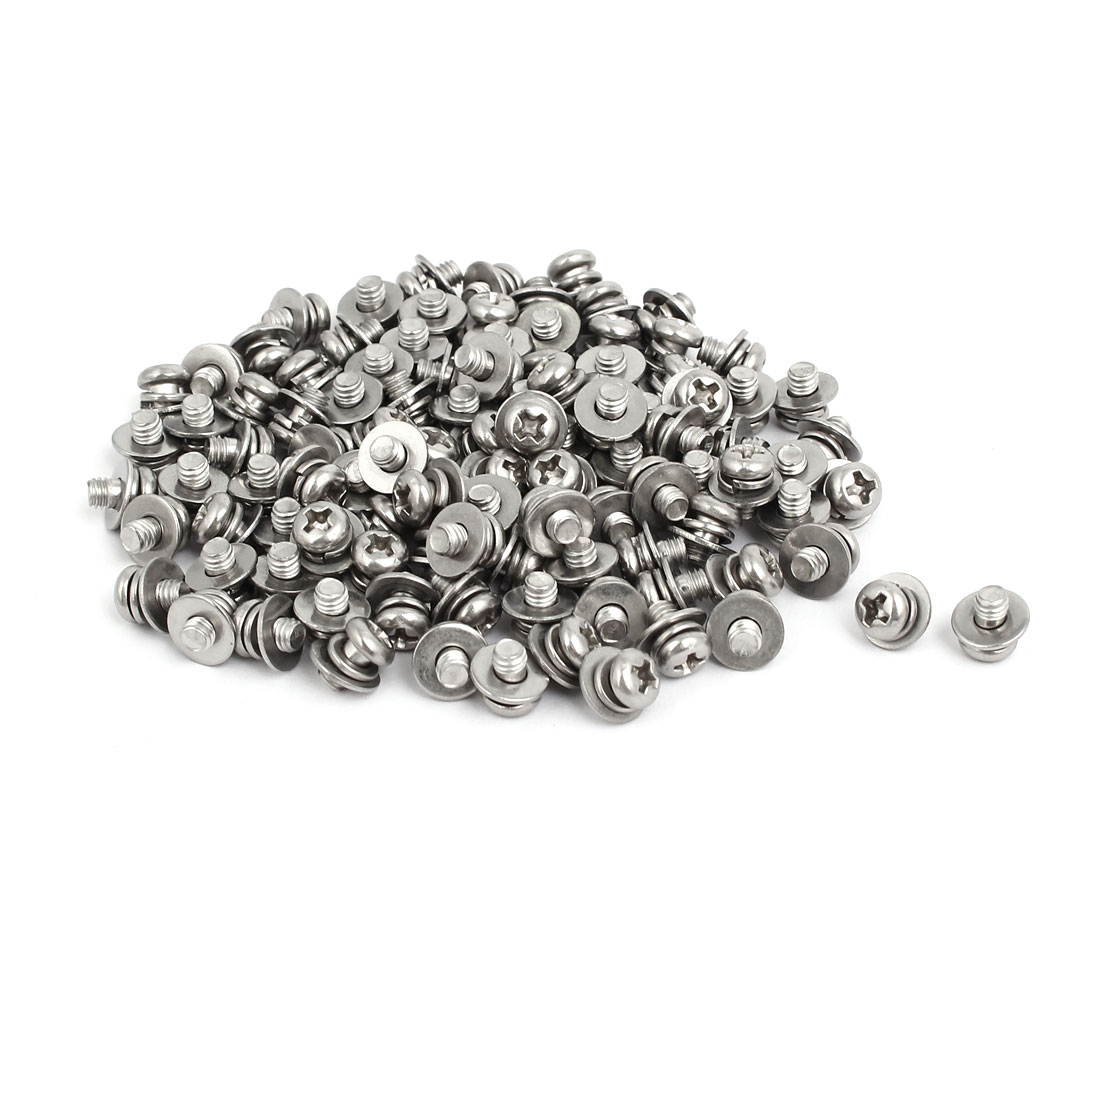 M4x6mm 304 Stainless Steel Phillips Pan Head Bolt Screw w Washer 150 Sets